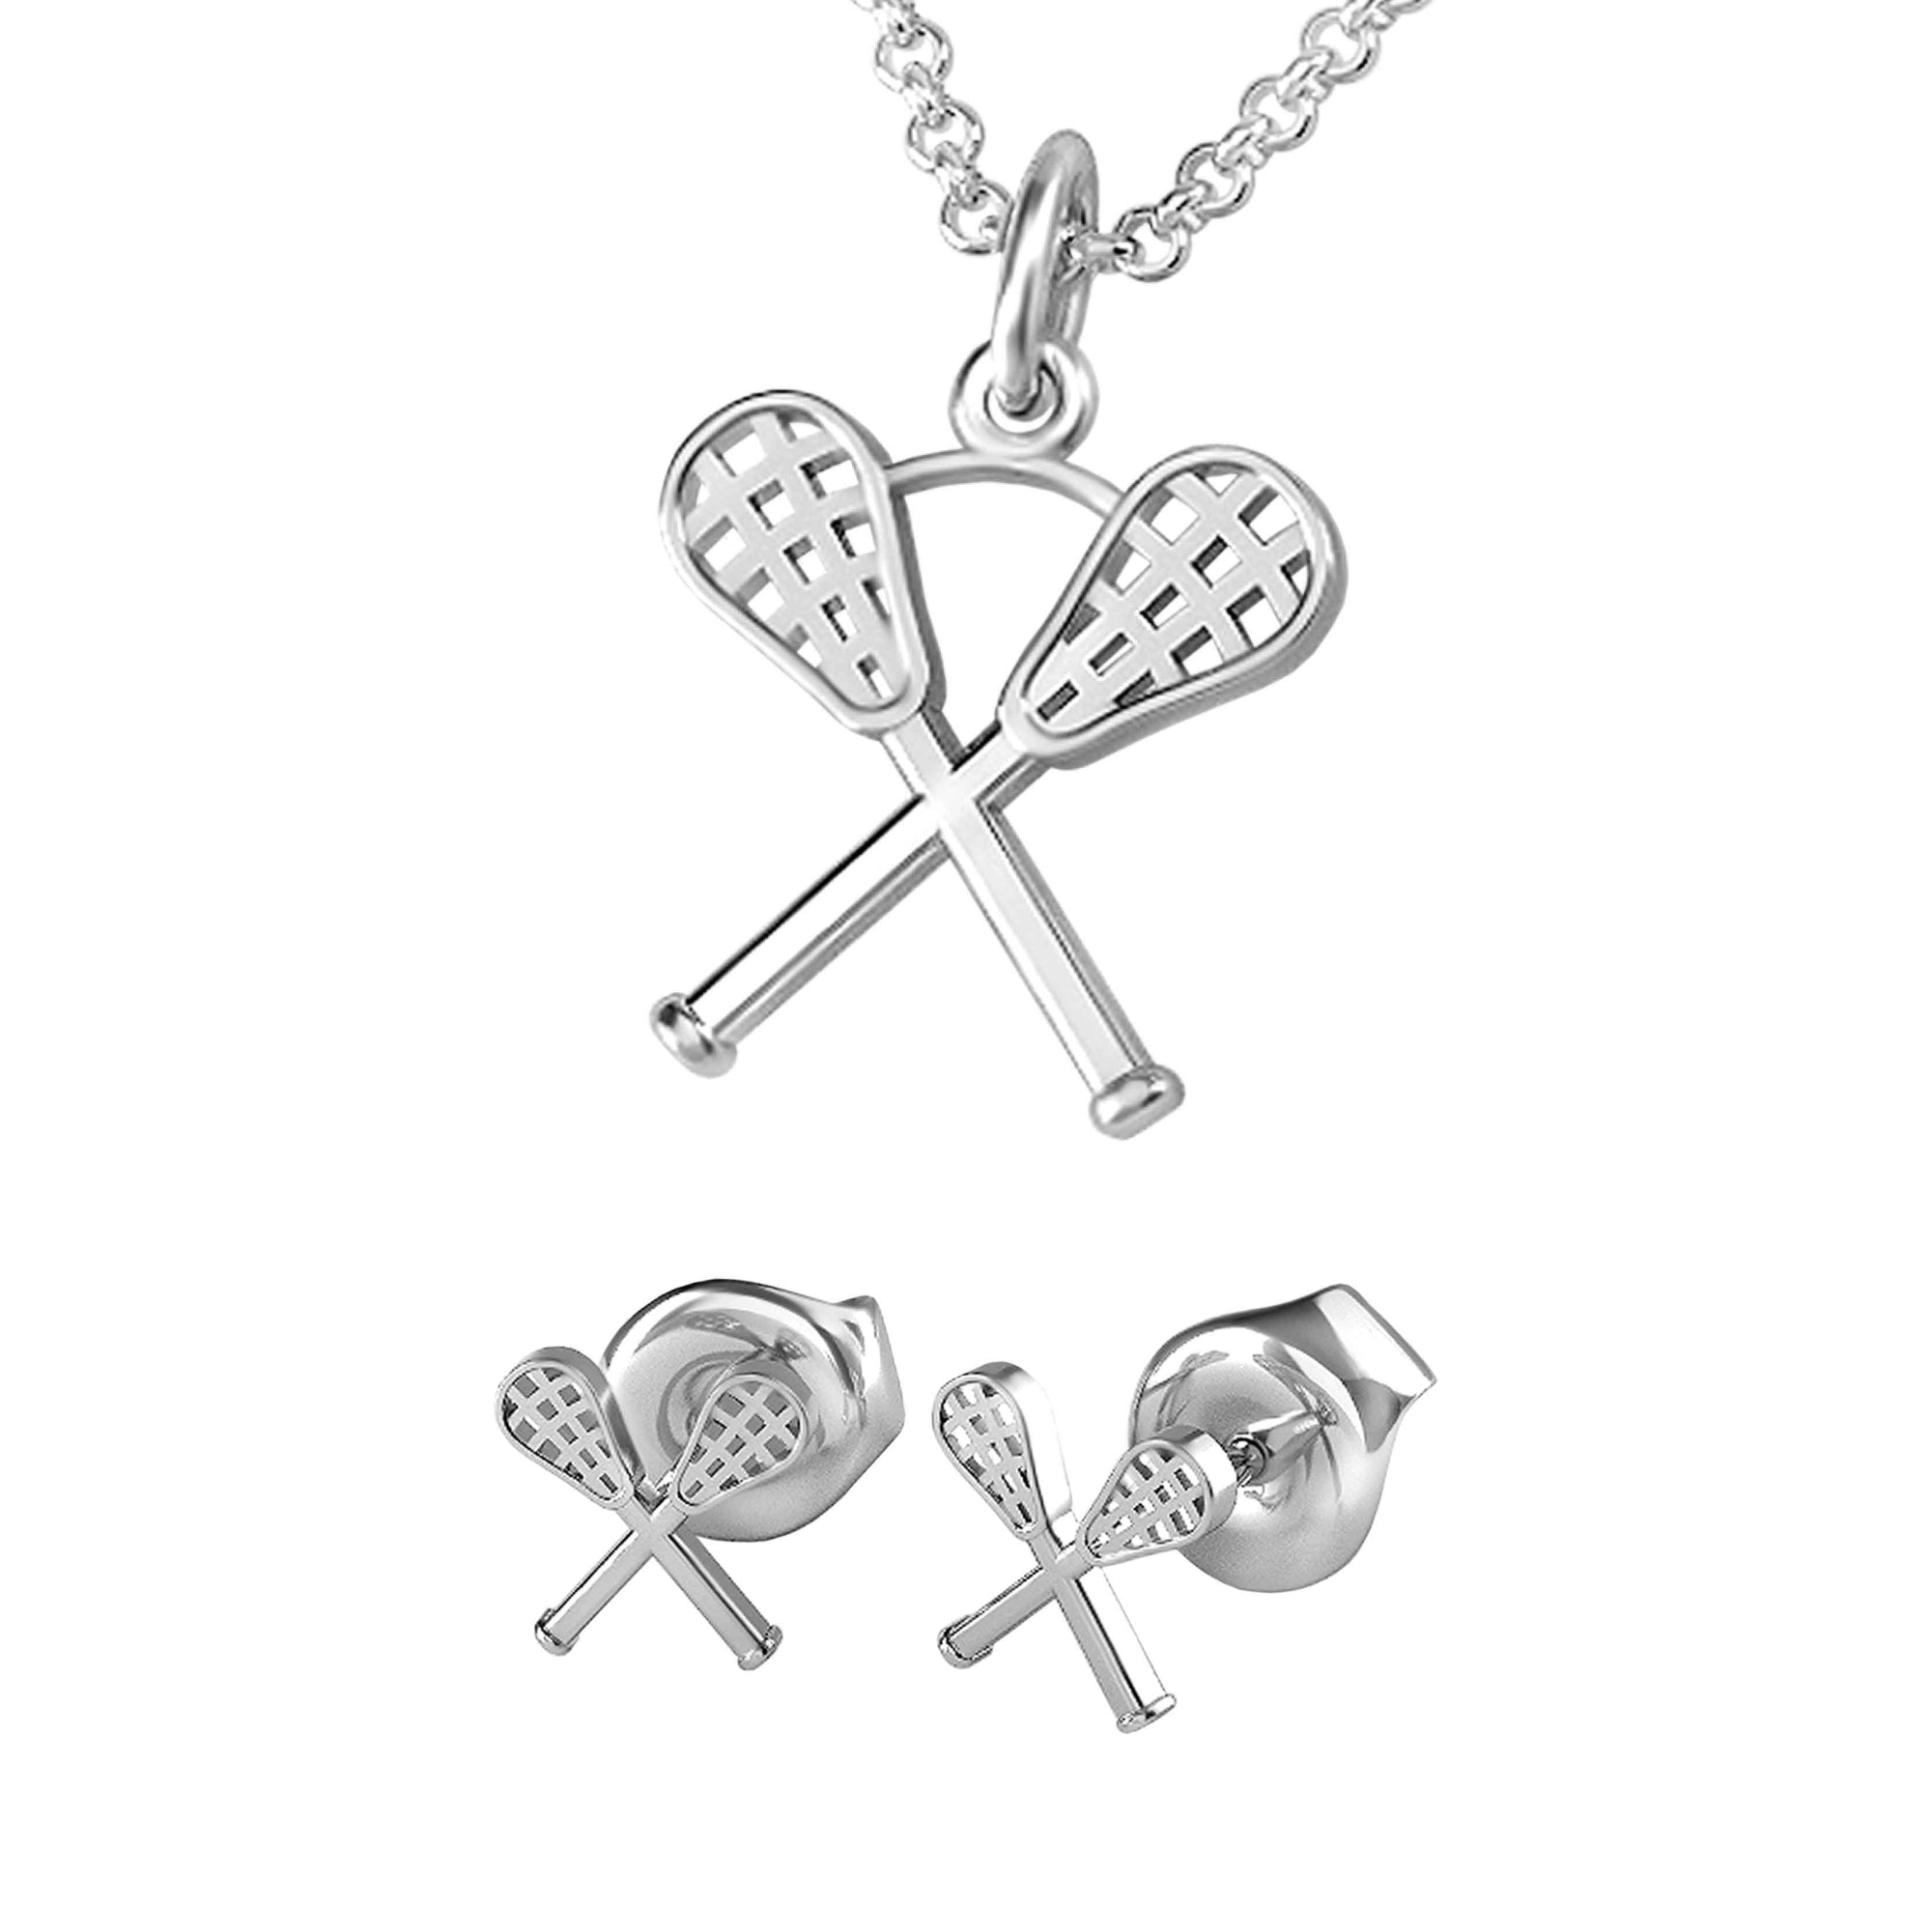 Crossed Lacrosse Sticks Pendant and Earrings